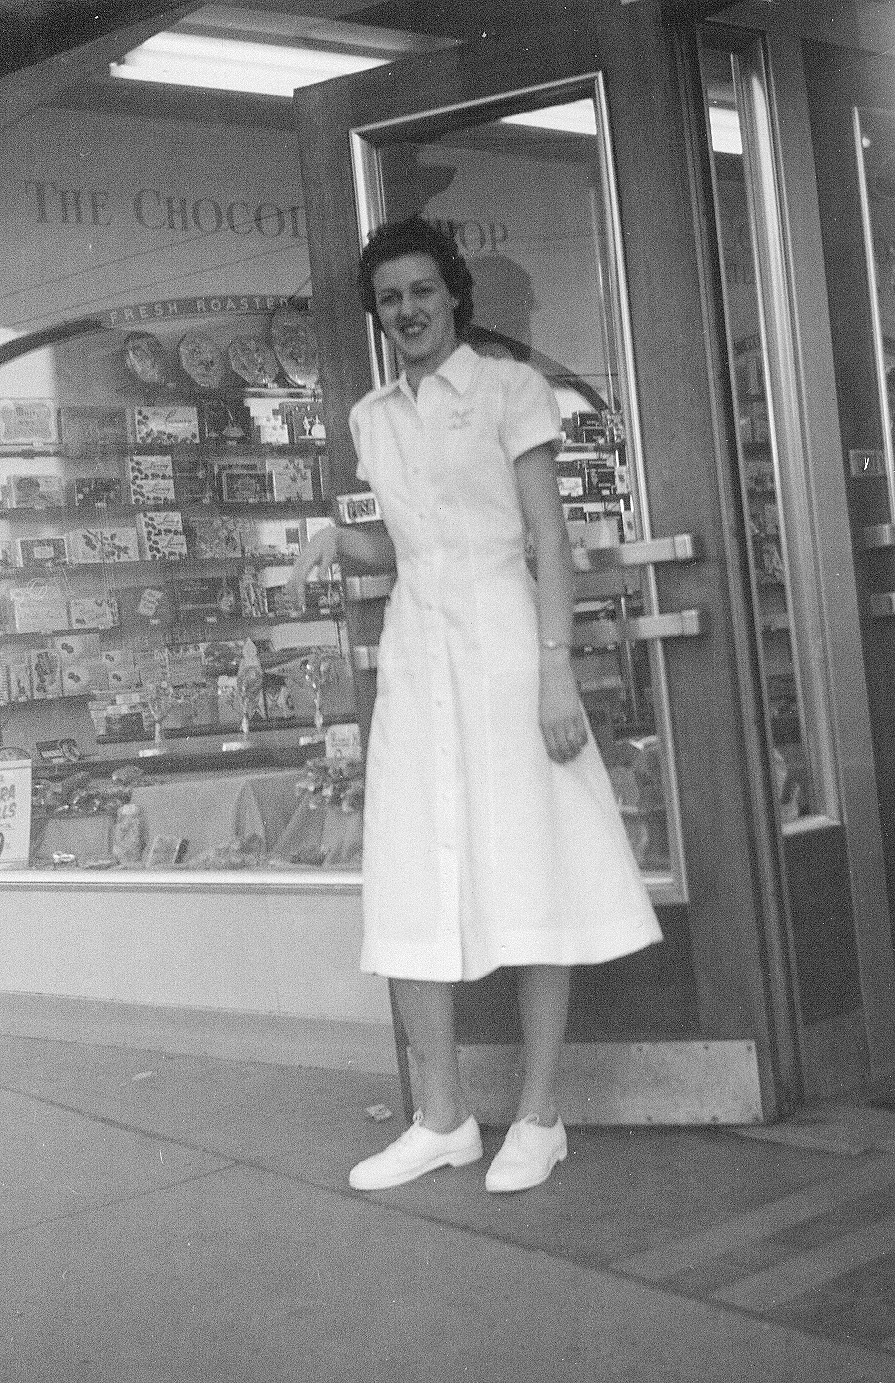 Shirley Herzog at the door of the Palace of Sweets, 1959. Photo courtesy of Lawrence Herzog.